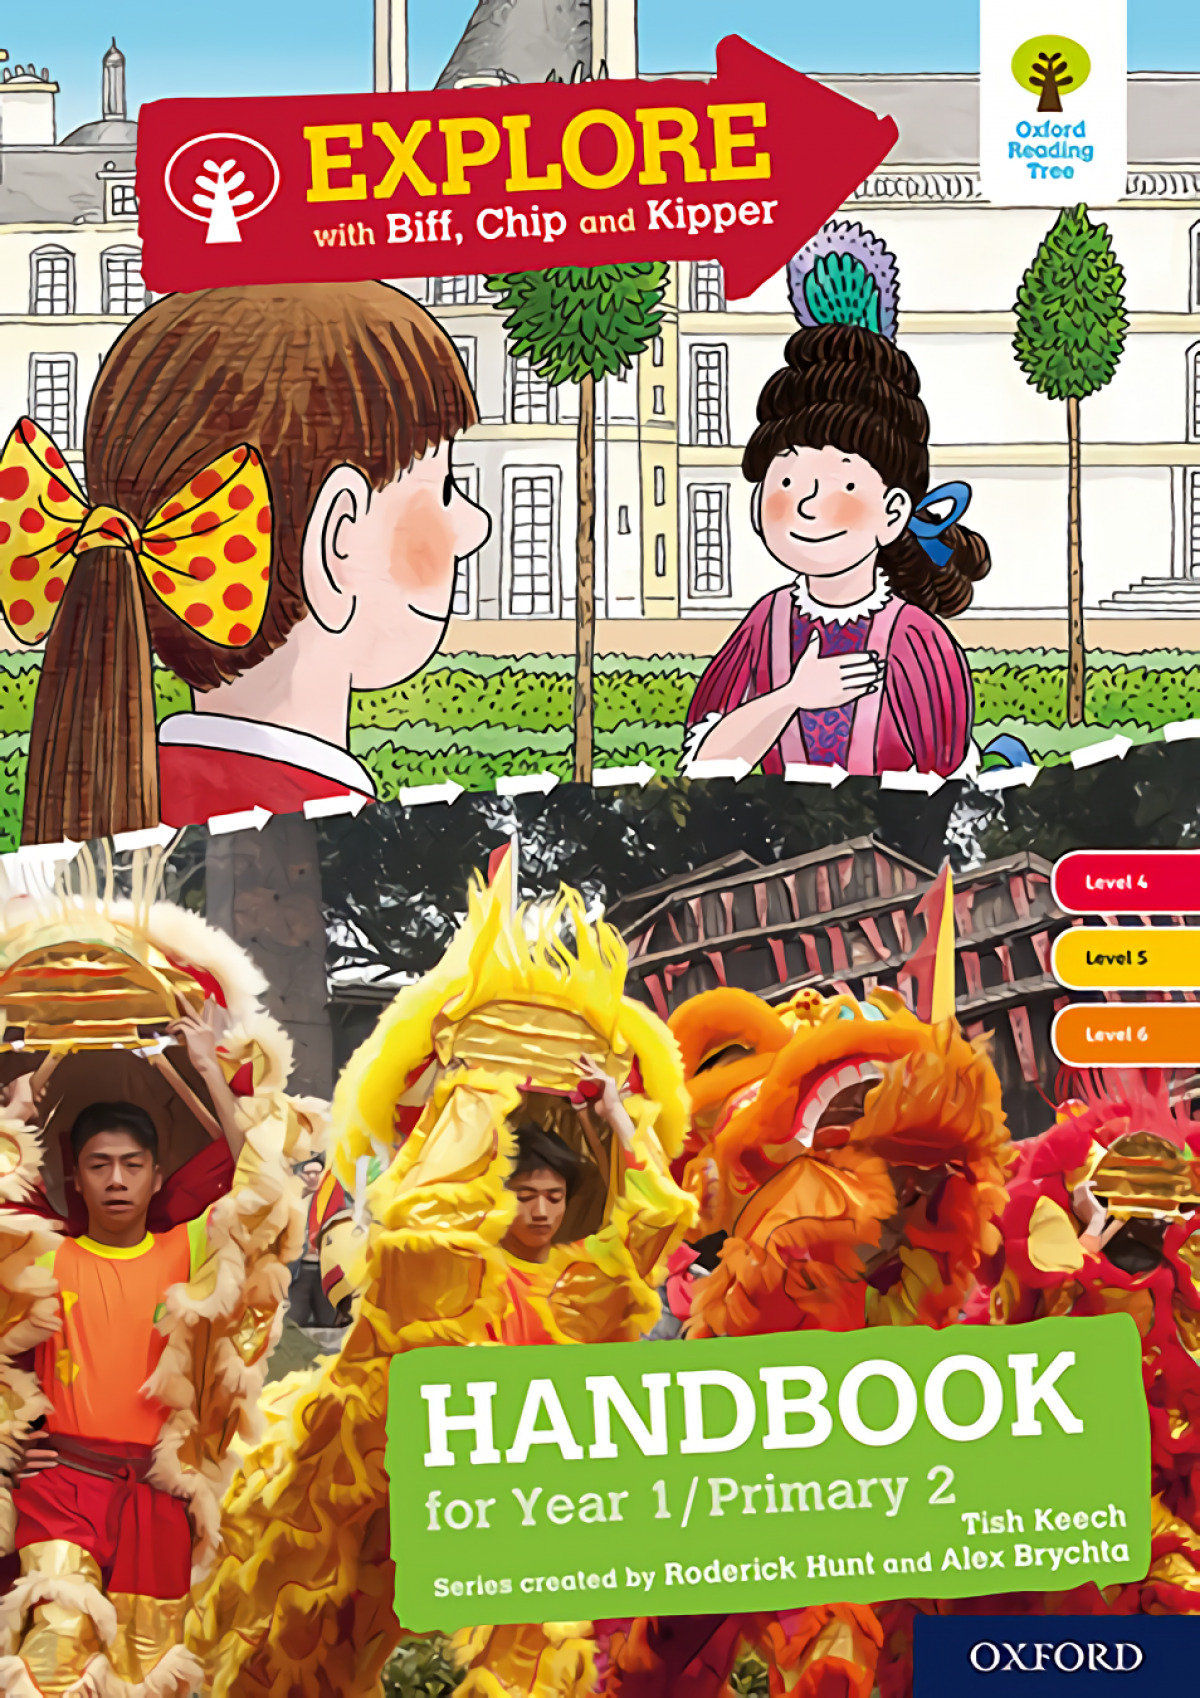 Oxford Reading Tree Explore with Biff, Chip and Kipper Levels 4 to 6. Year 1/P2 Handbook